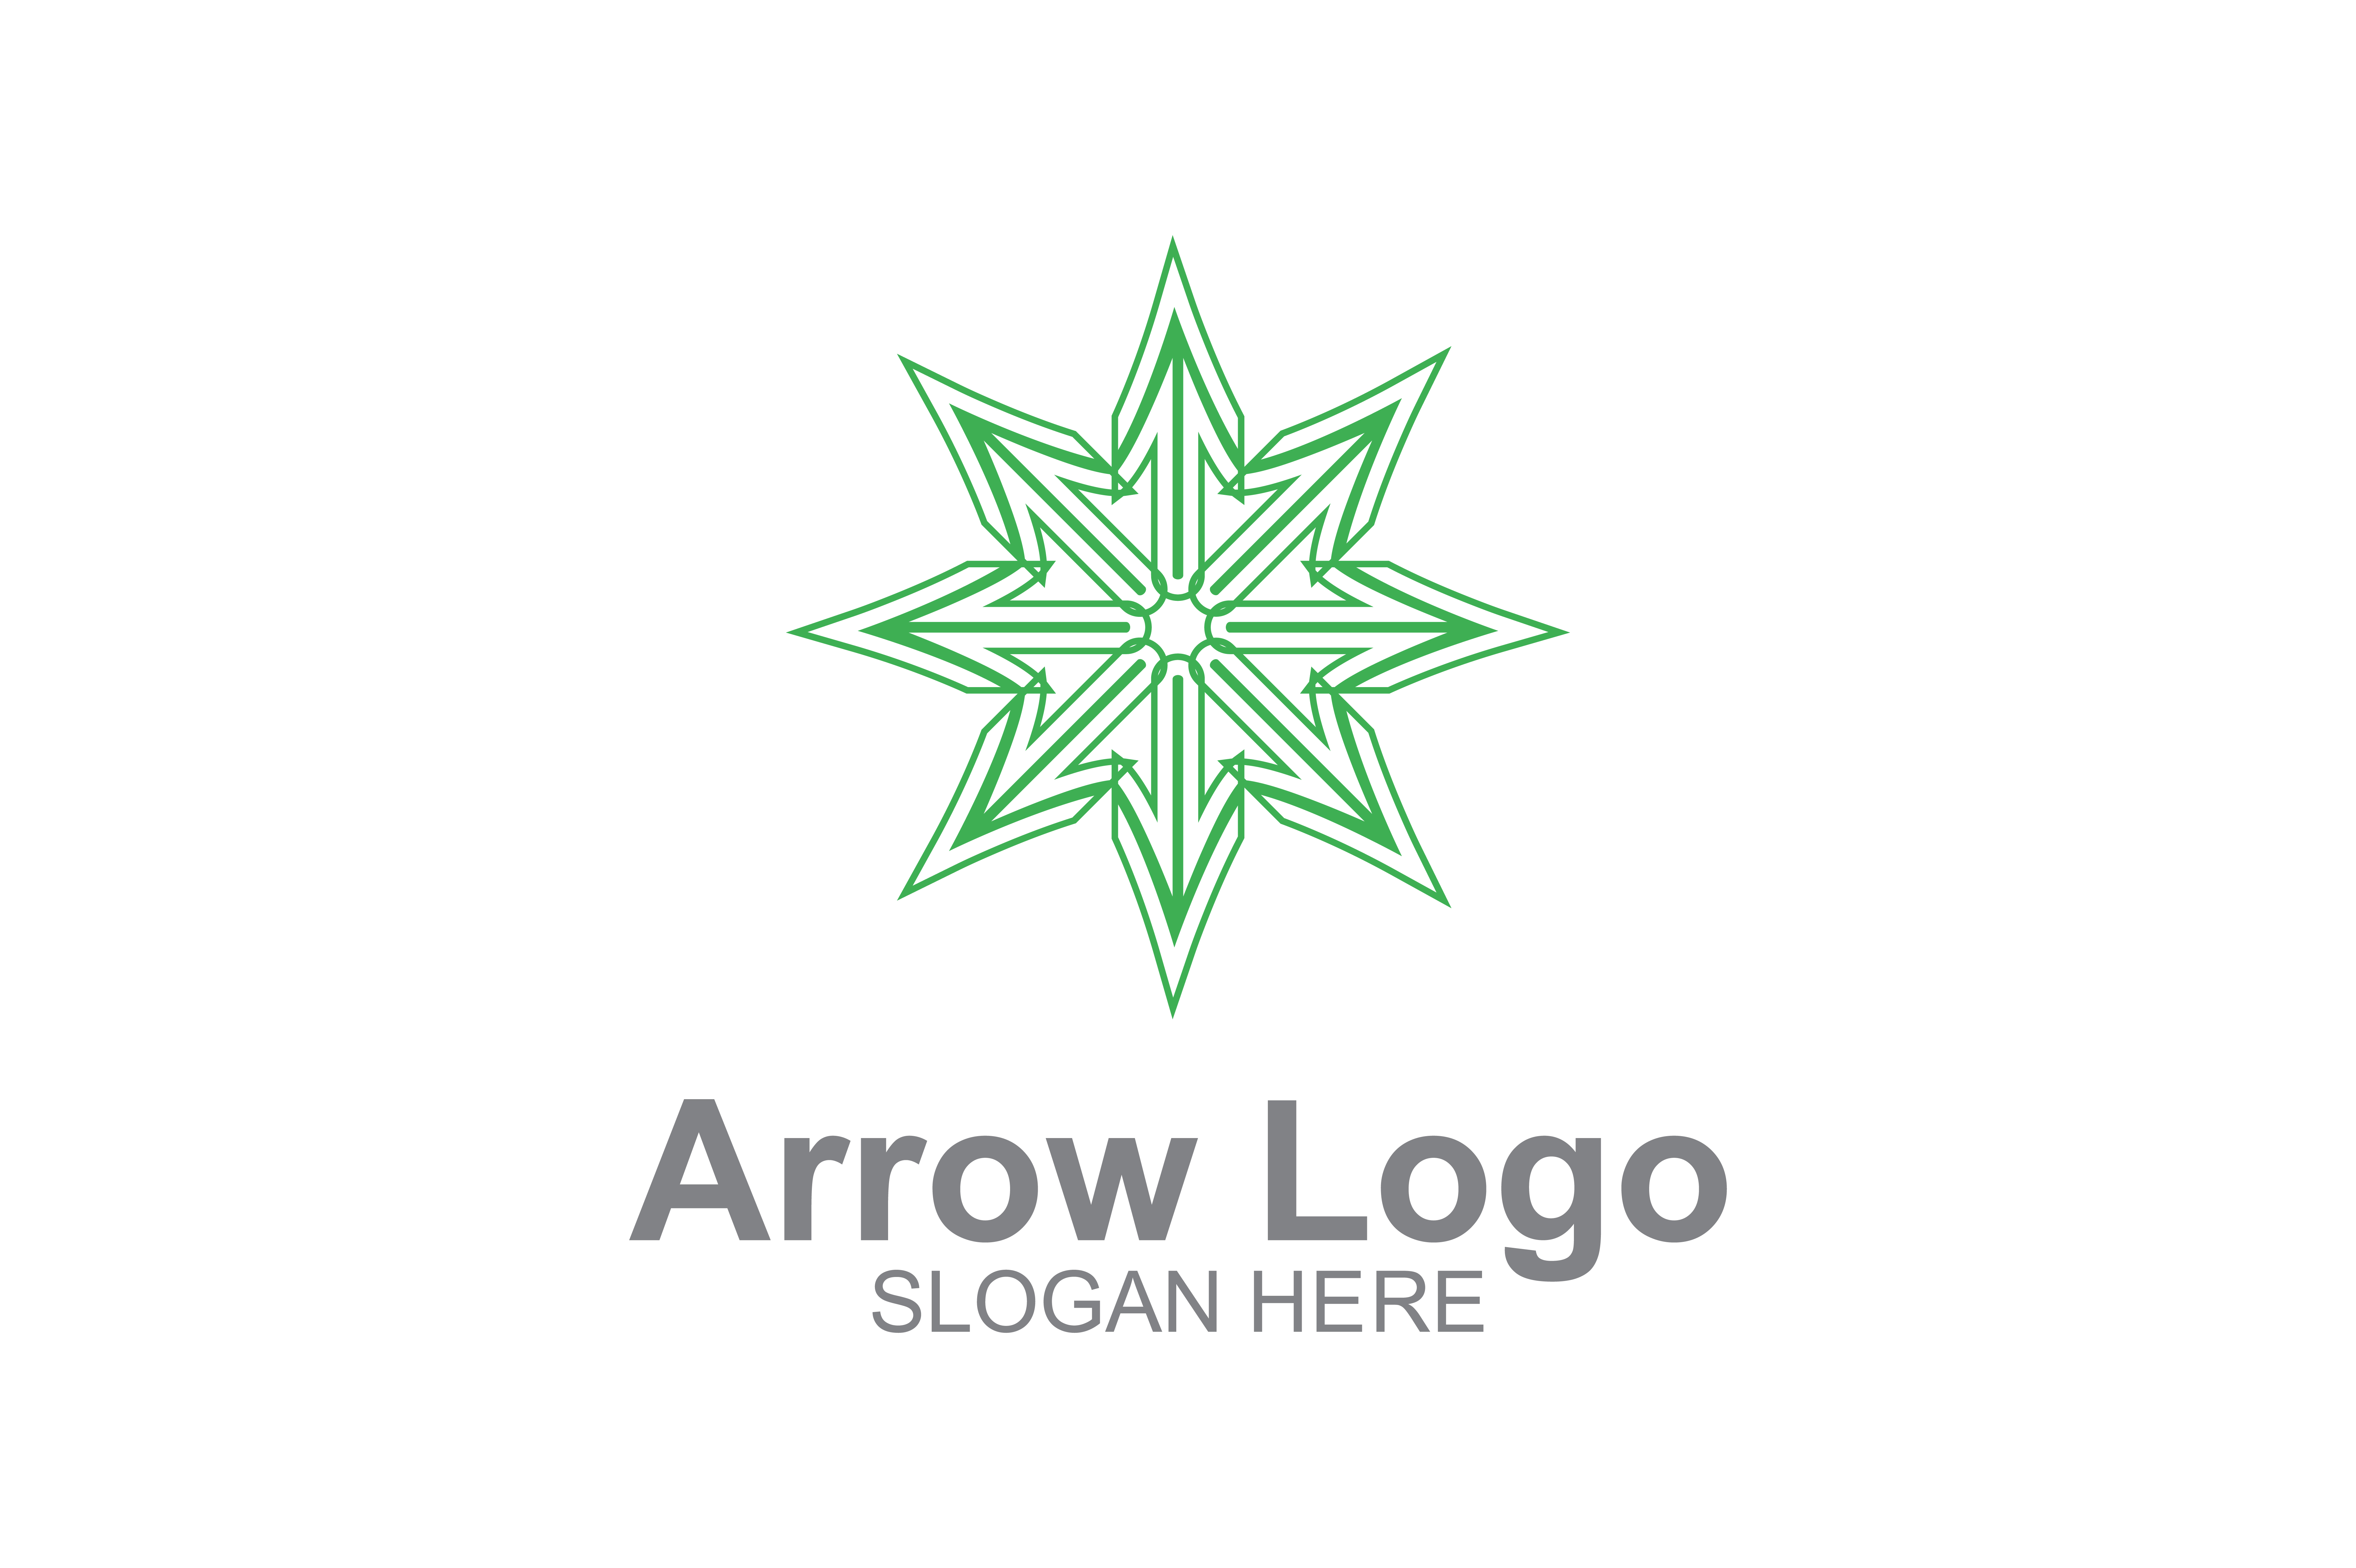 Download Free Arrow Logo Graphic By Guardesign Creative Fabrica for Cricut Explore, Silhouette and other cutting machines.